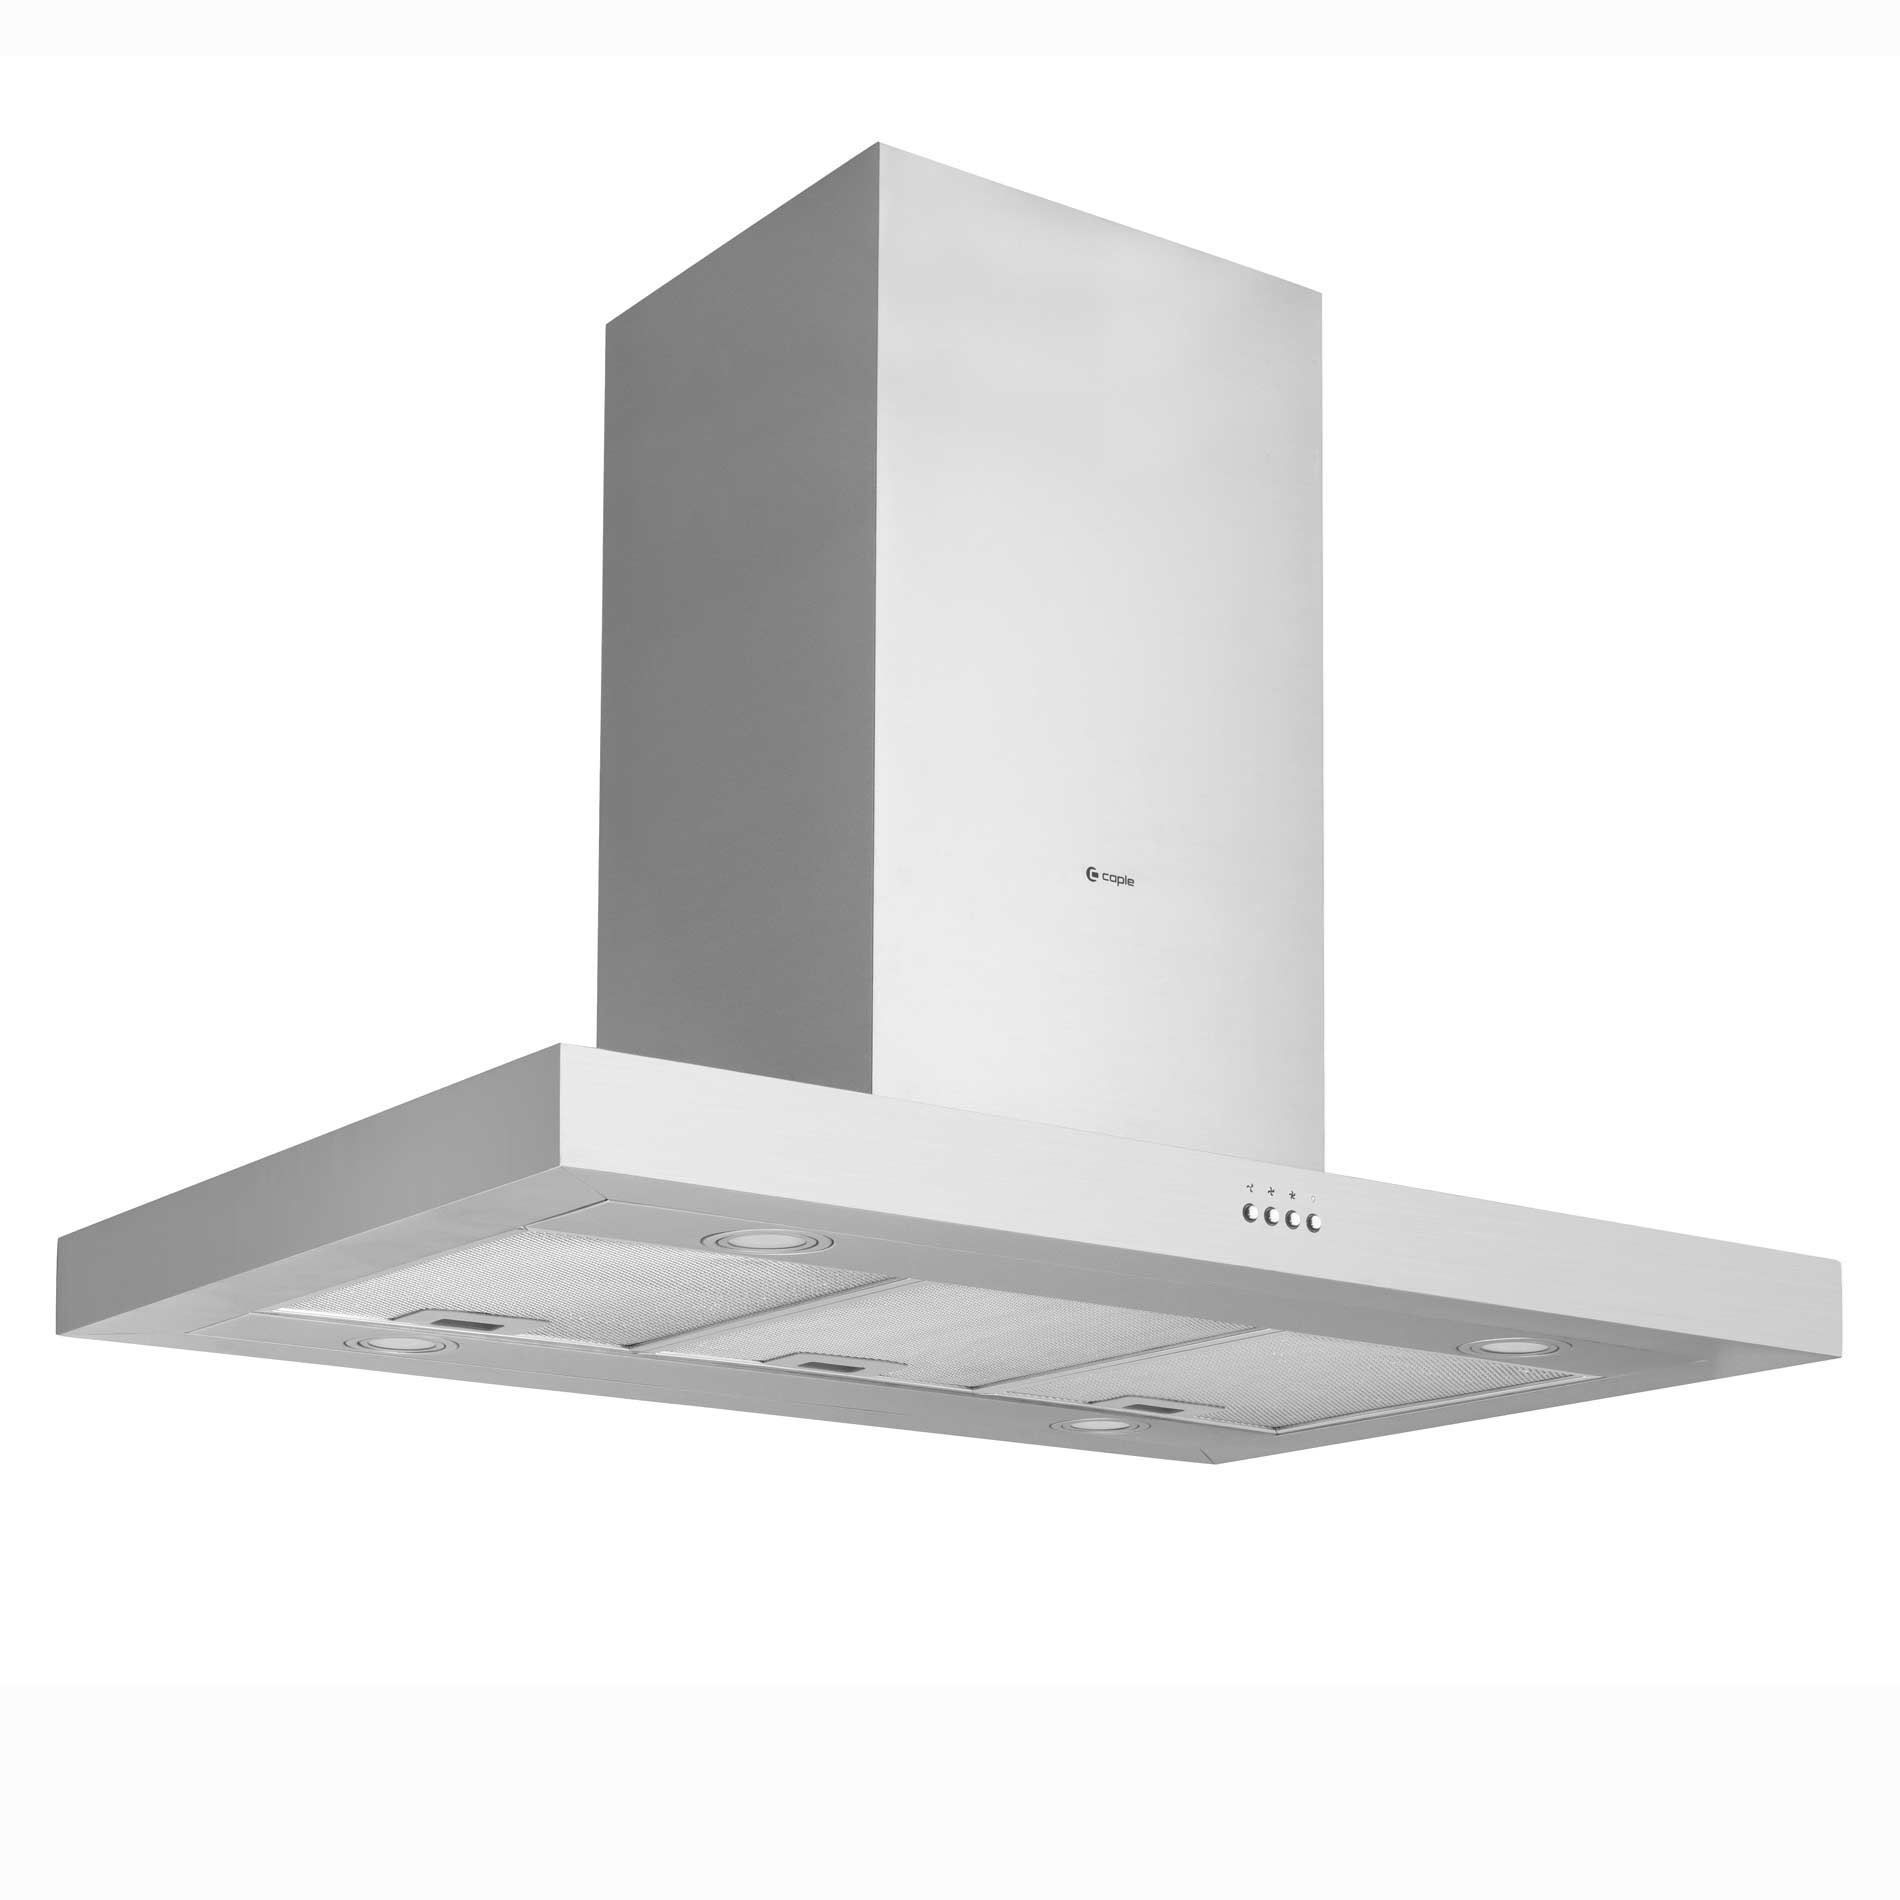 Picture of BXI911 Island chimney hood